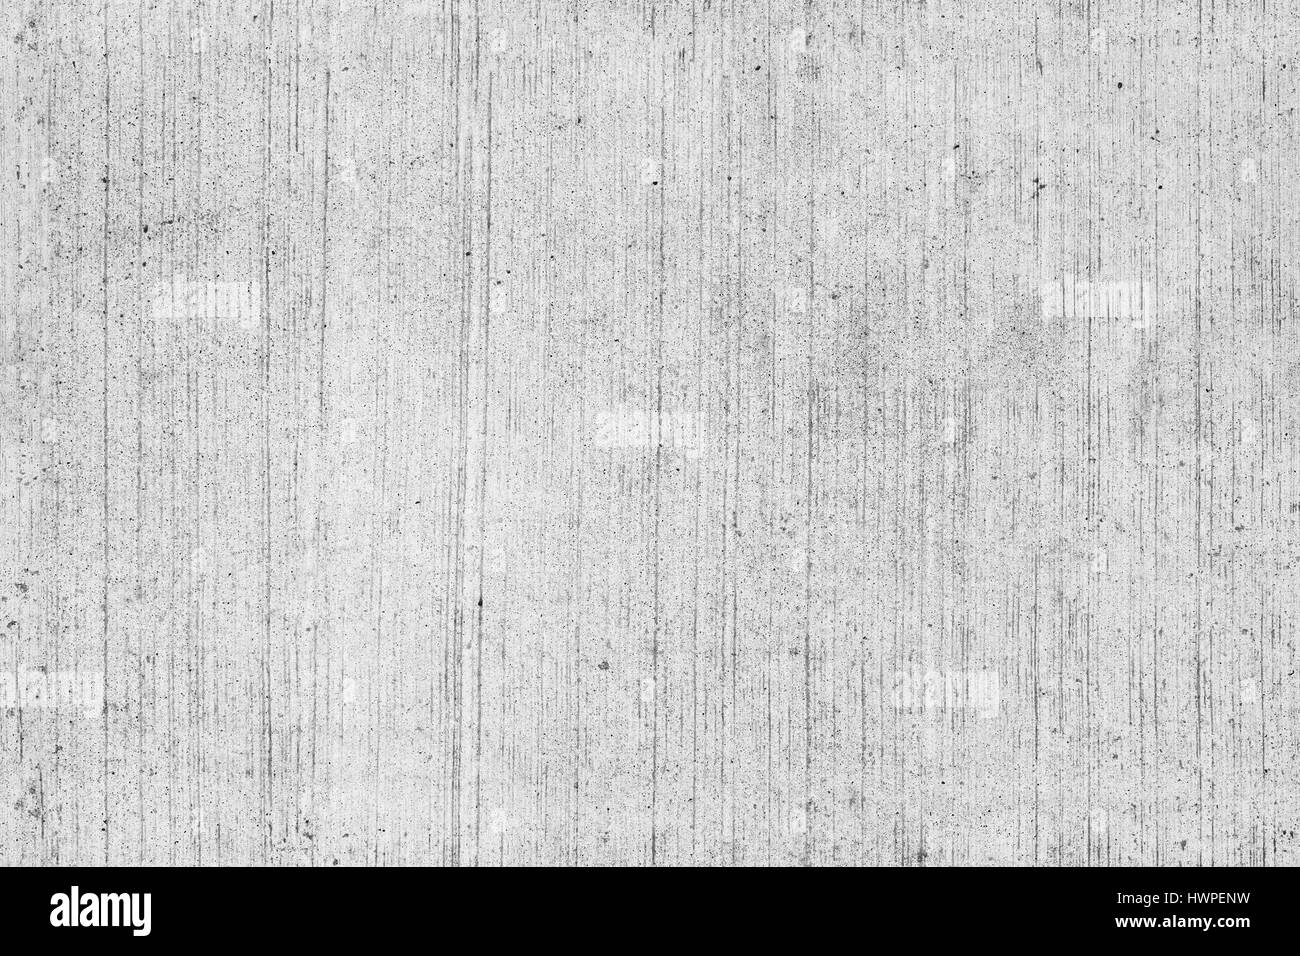 Line Texture Wall : Rough white concrete wall with vertical lines pattern